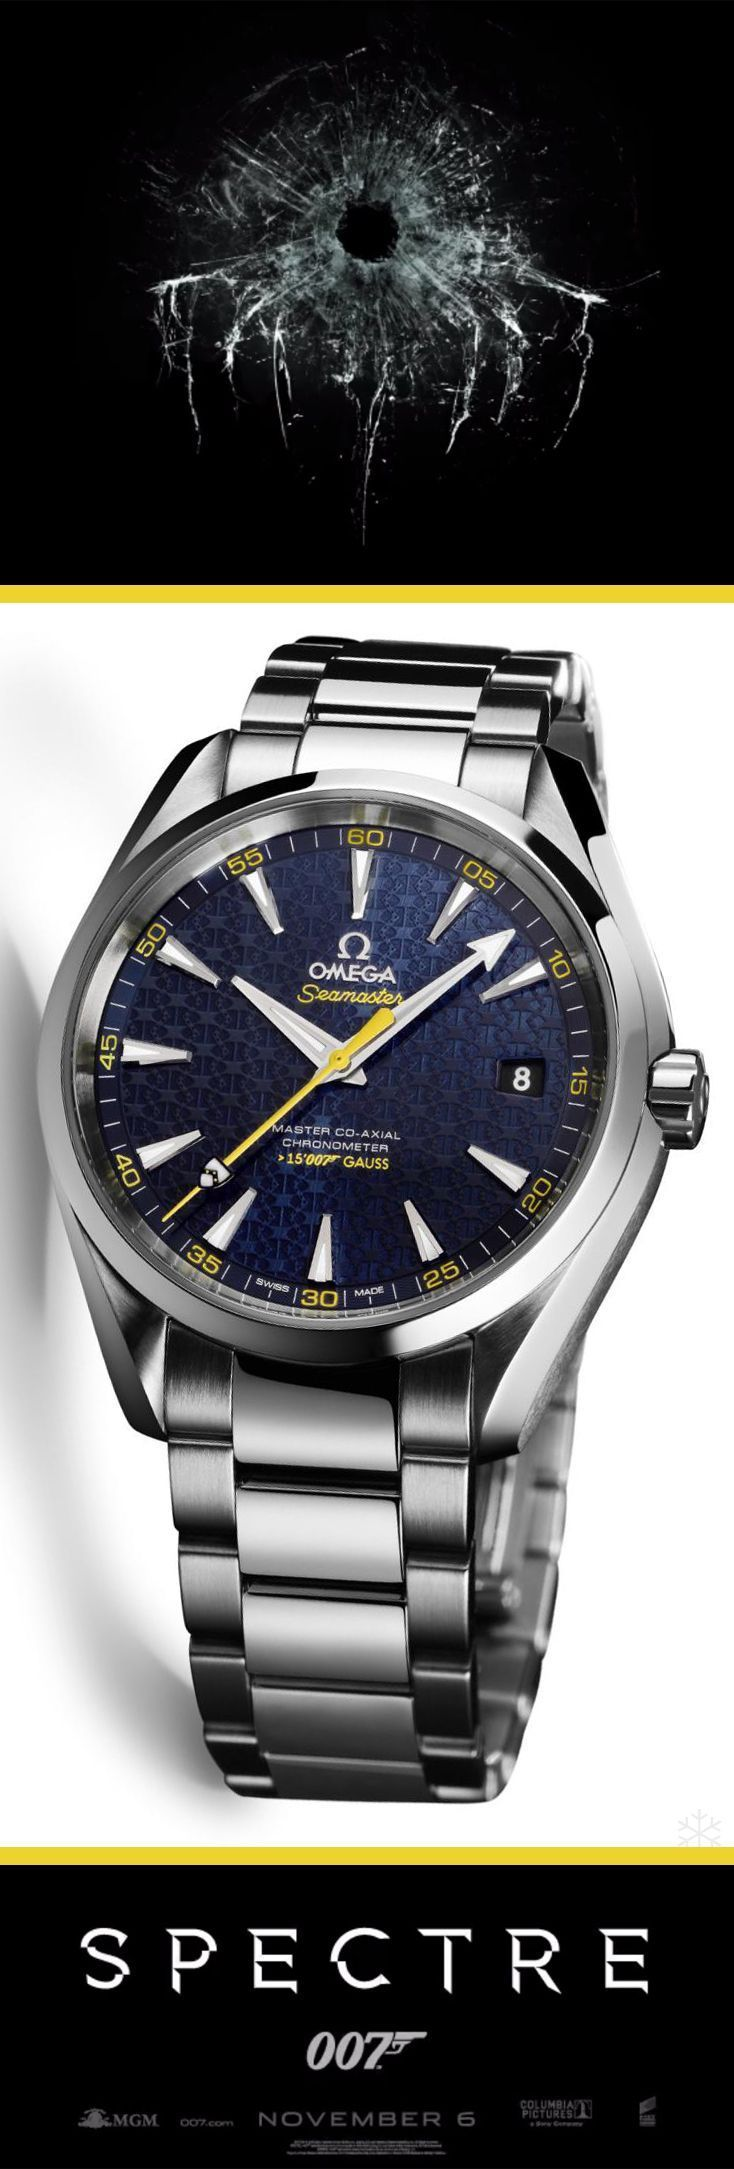 In anticipation of the new James Bond 007 movie, Spectre, Omega, the official watch of James Bond, has debuted a new James Bond-themed timepiece with the limited edition Omega Seamaster Aqua Terra > 15,007 Gauss. The watch is based on the popular  Omega Aqua Terra > 15,000. The most distinctive elements of the new limited edition > 15,007 Gauss watch is the special colors as well as the use of the James Bond family coat-of-arms. - expensive mens watches, buy online watches, best watch store…